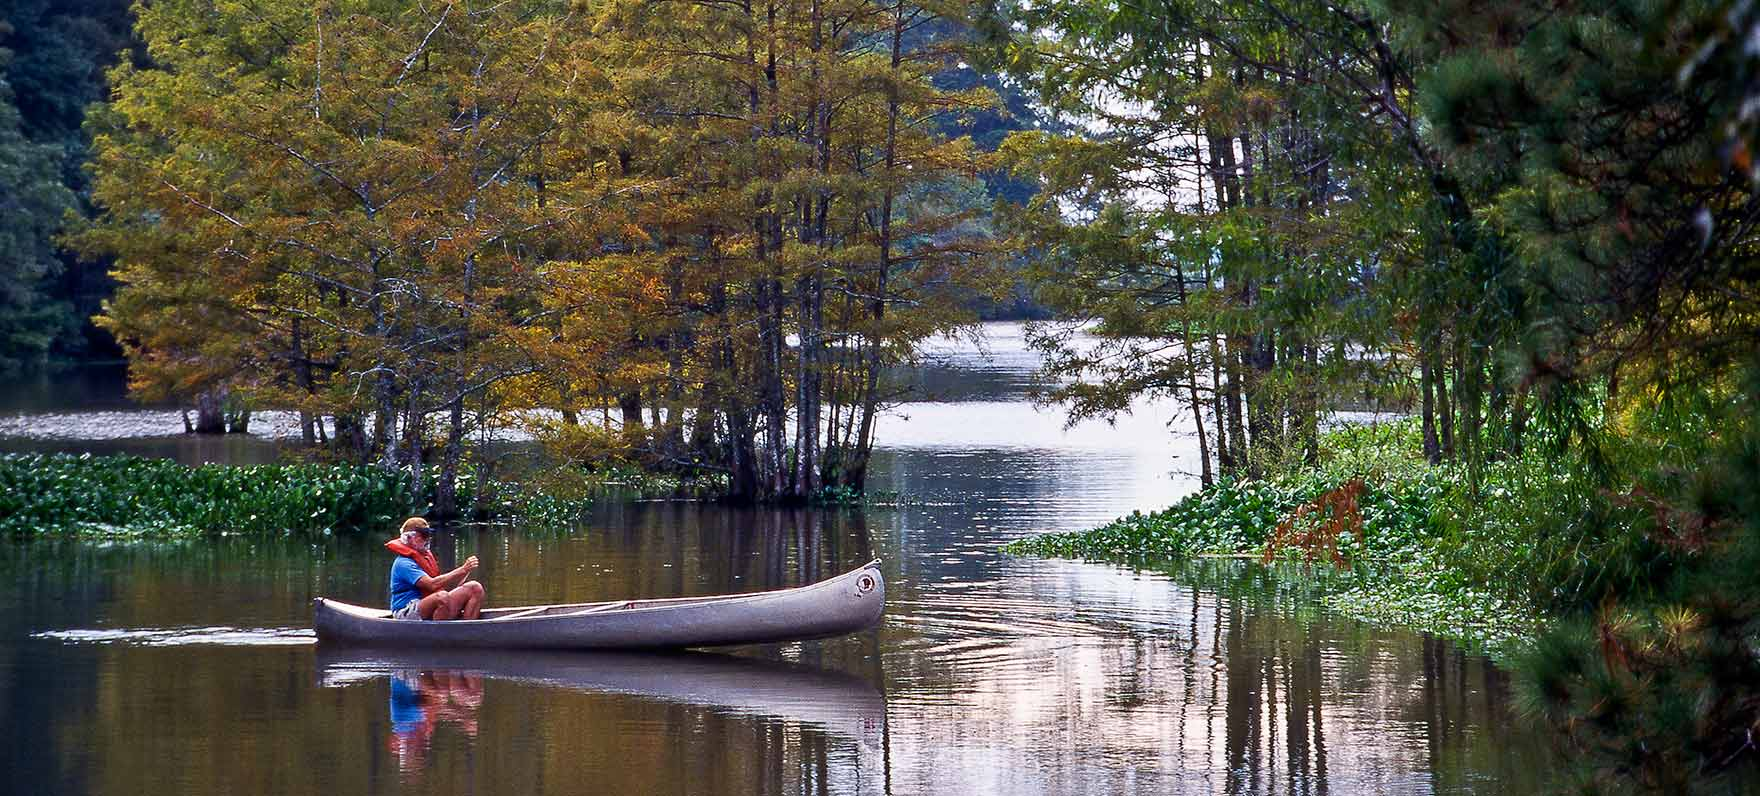 Canoe ride on the quiet waters at Martin Dies, Jr. State Park in Texas